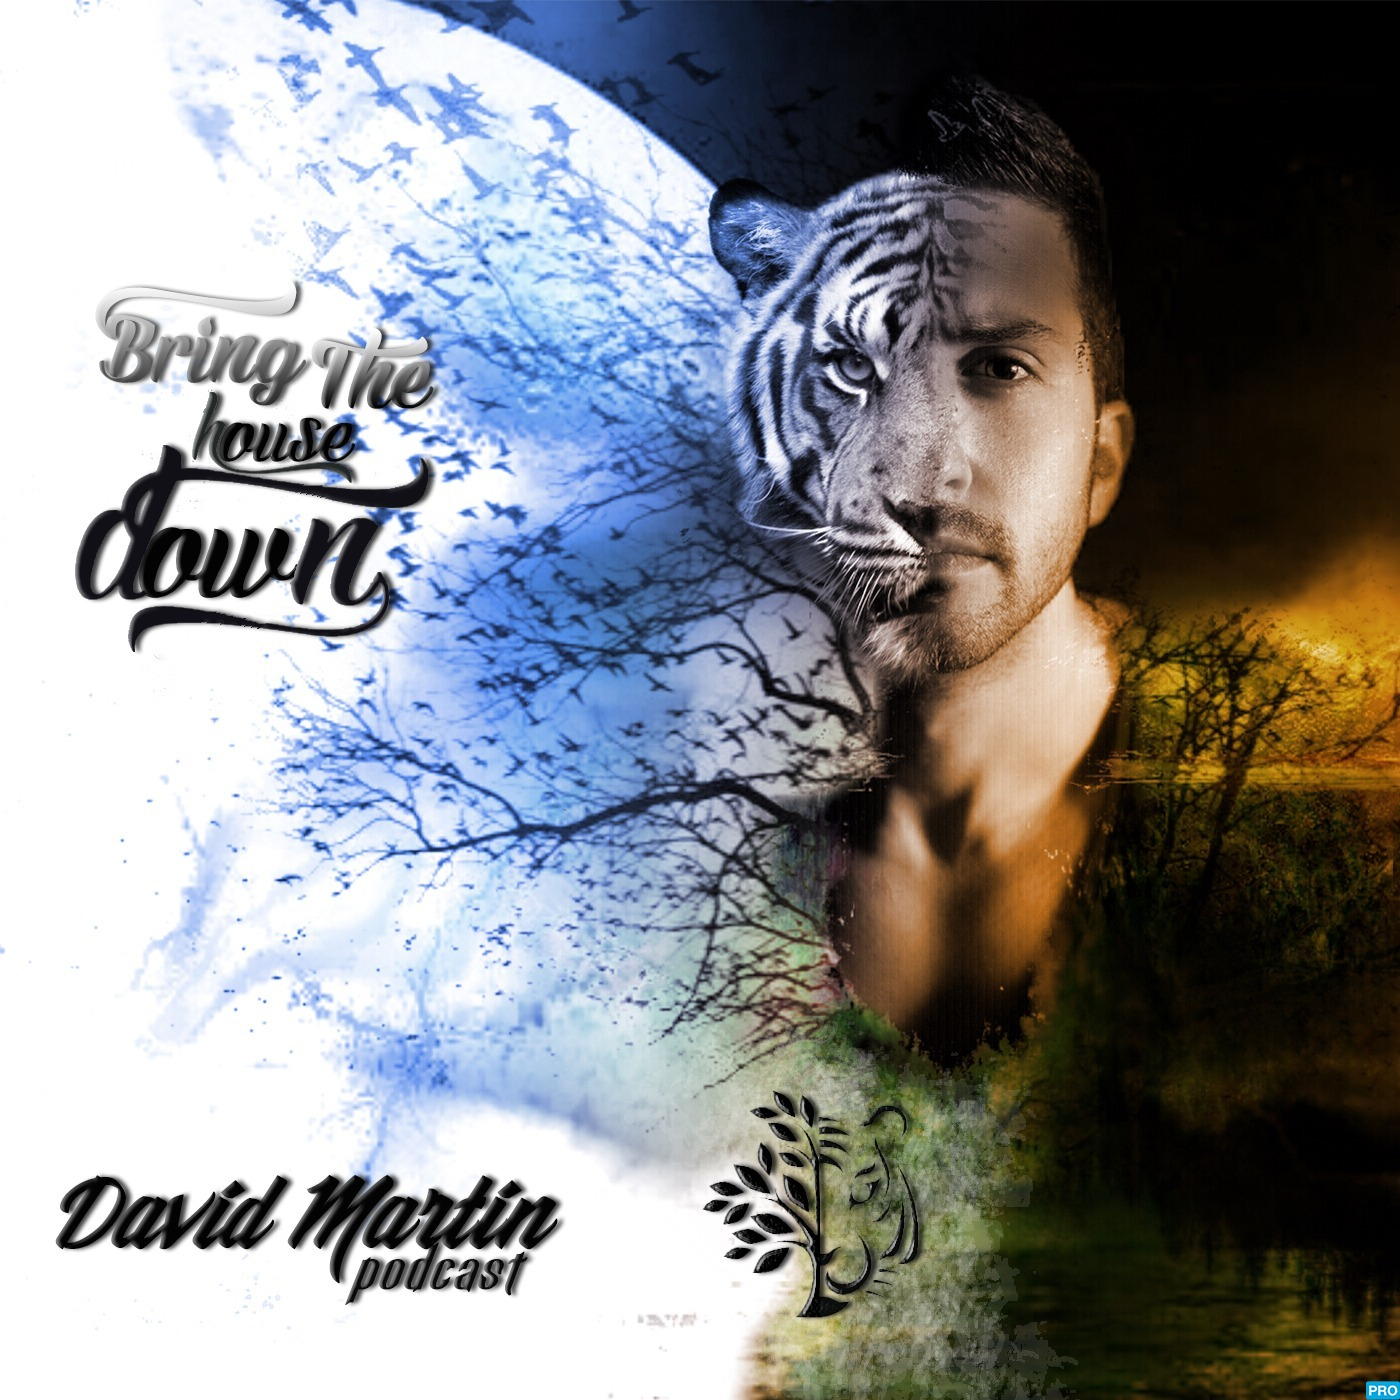 Bring The House Down Podcast by David Martin